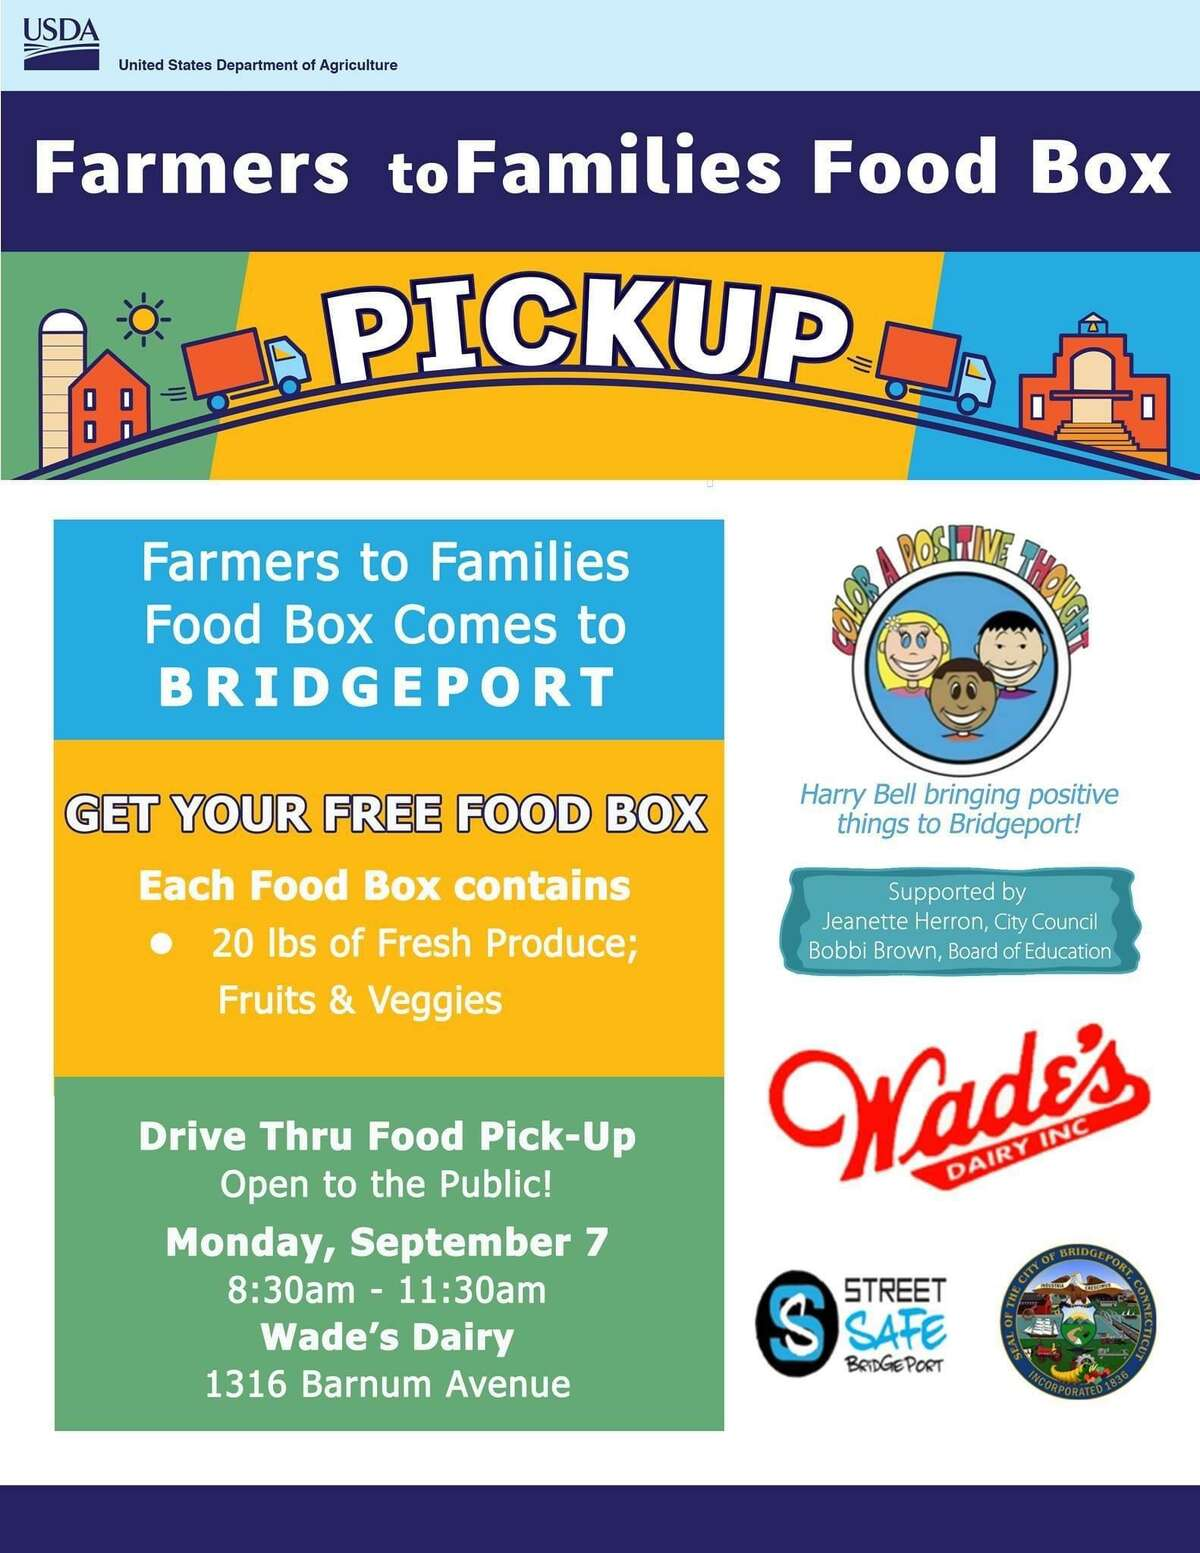 A free box containing 20 pounds of fresh fruits and vegetables will be given to area residents who come to Wade's Dairy, 1316 Barnum Avenue Labor Day between 8:30 and 11:20 a.m.